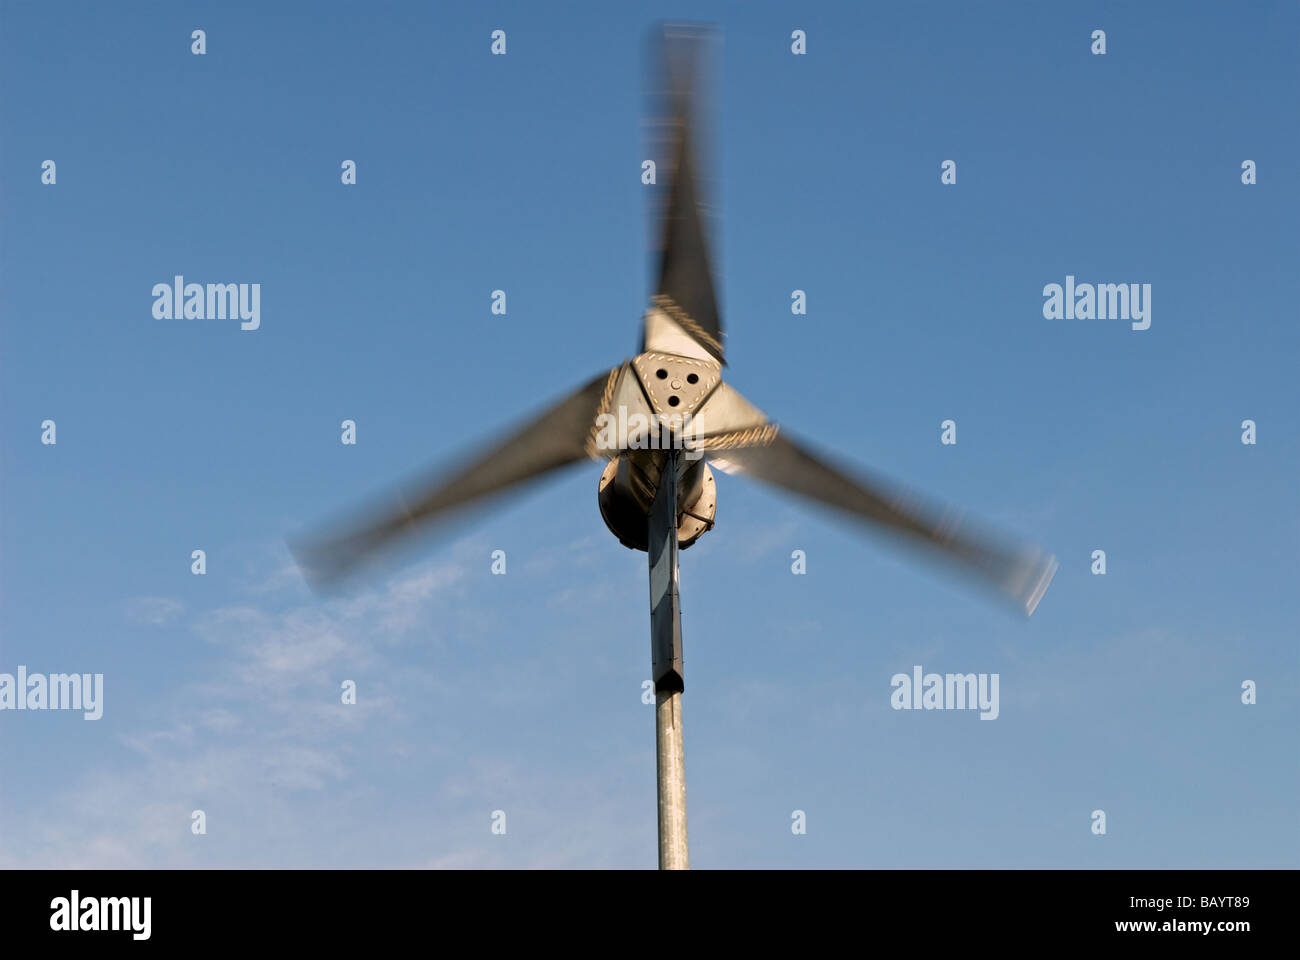 A 6KW wind turbine manufactured by Proven Energy, suppling Stock